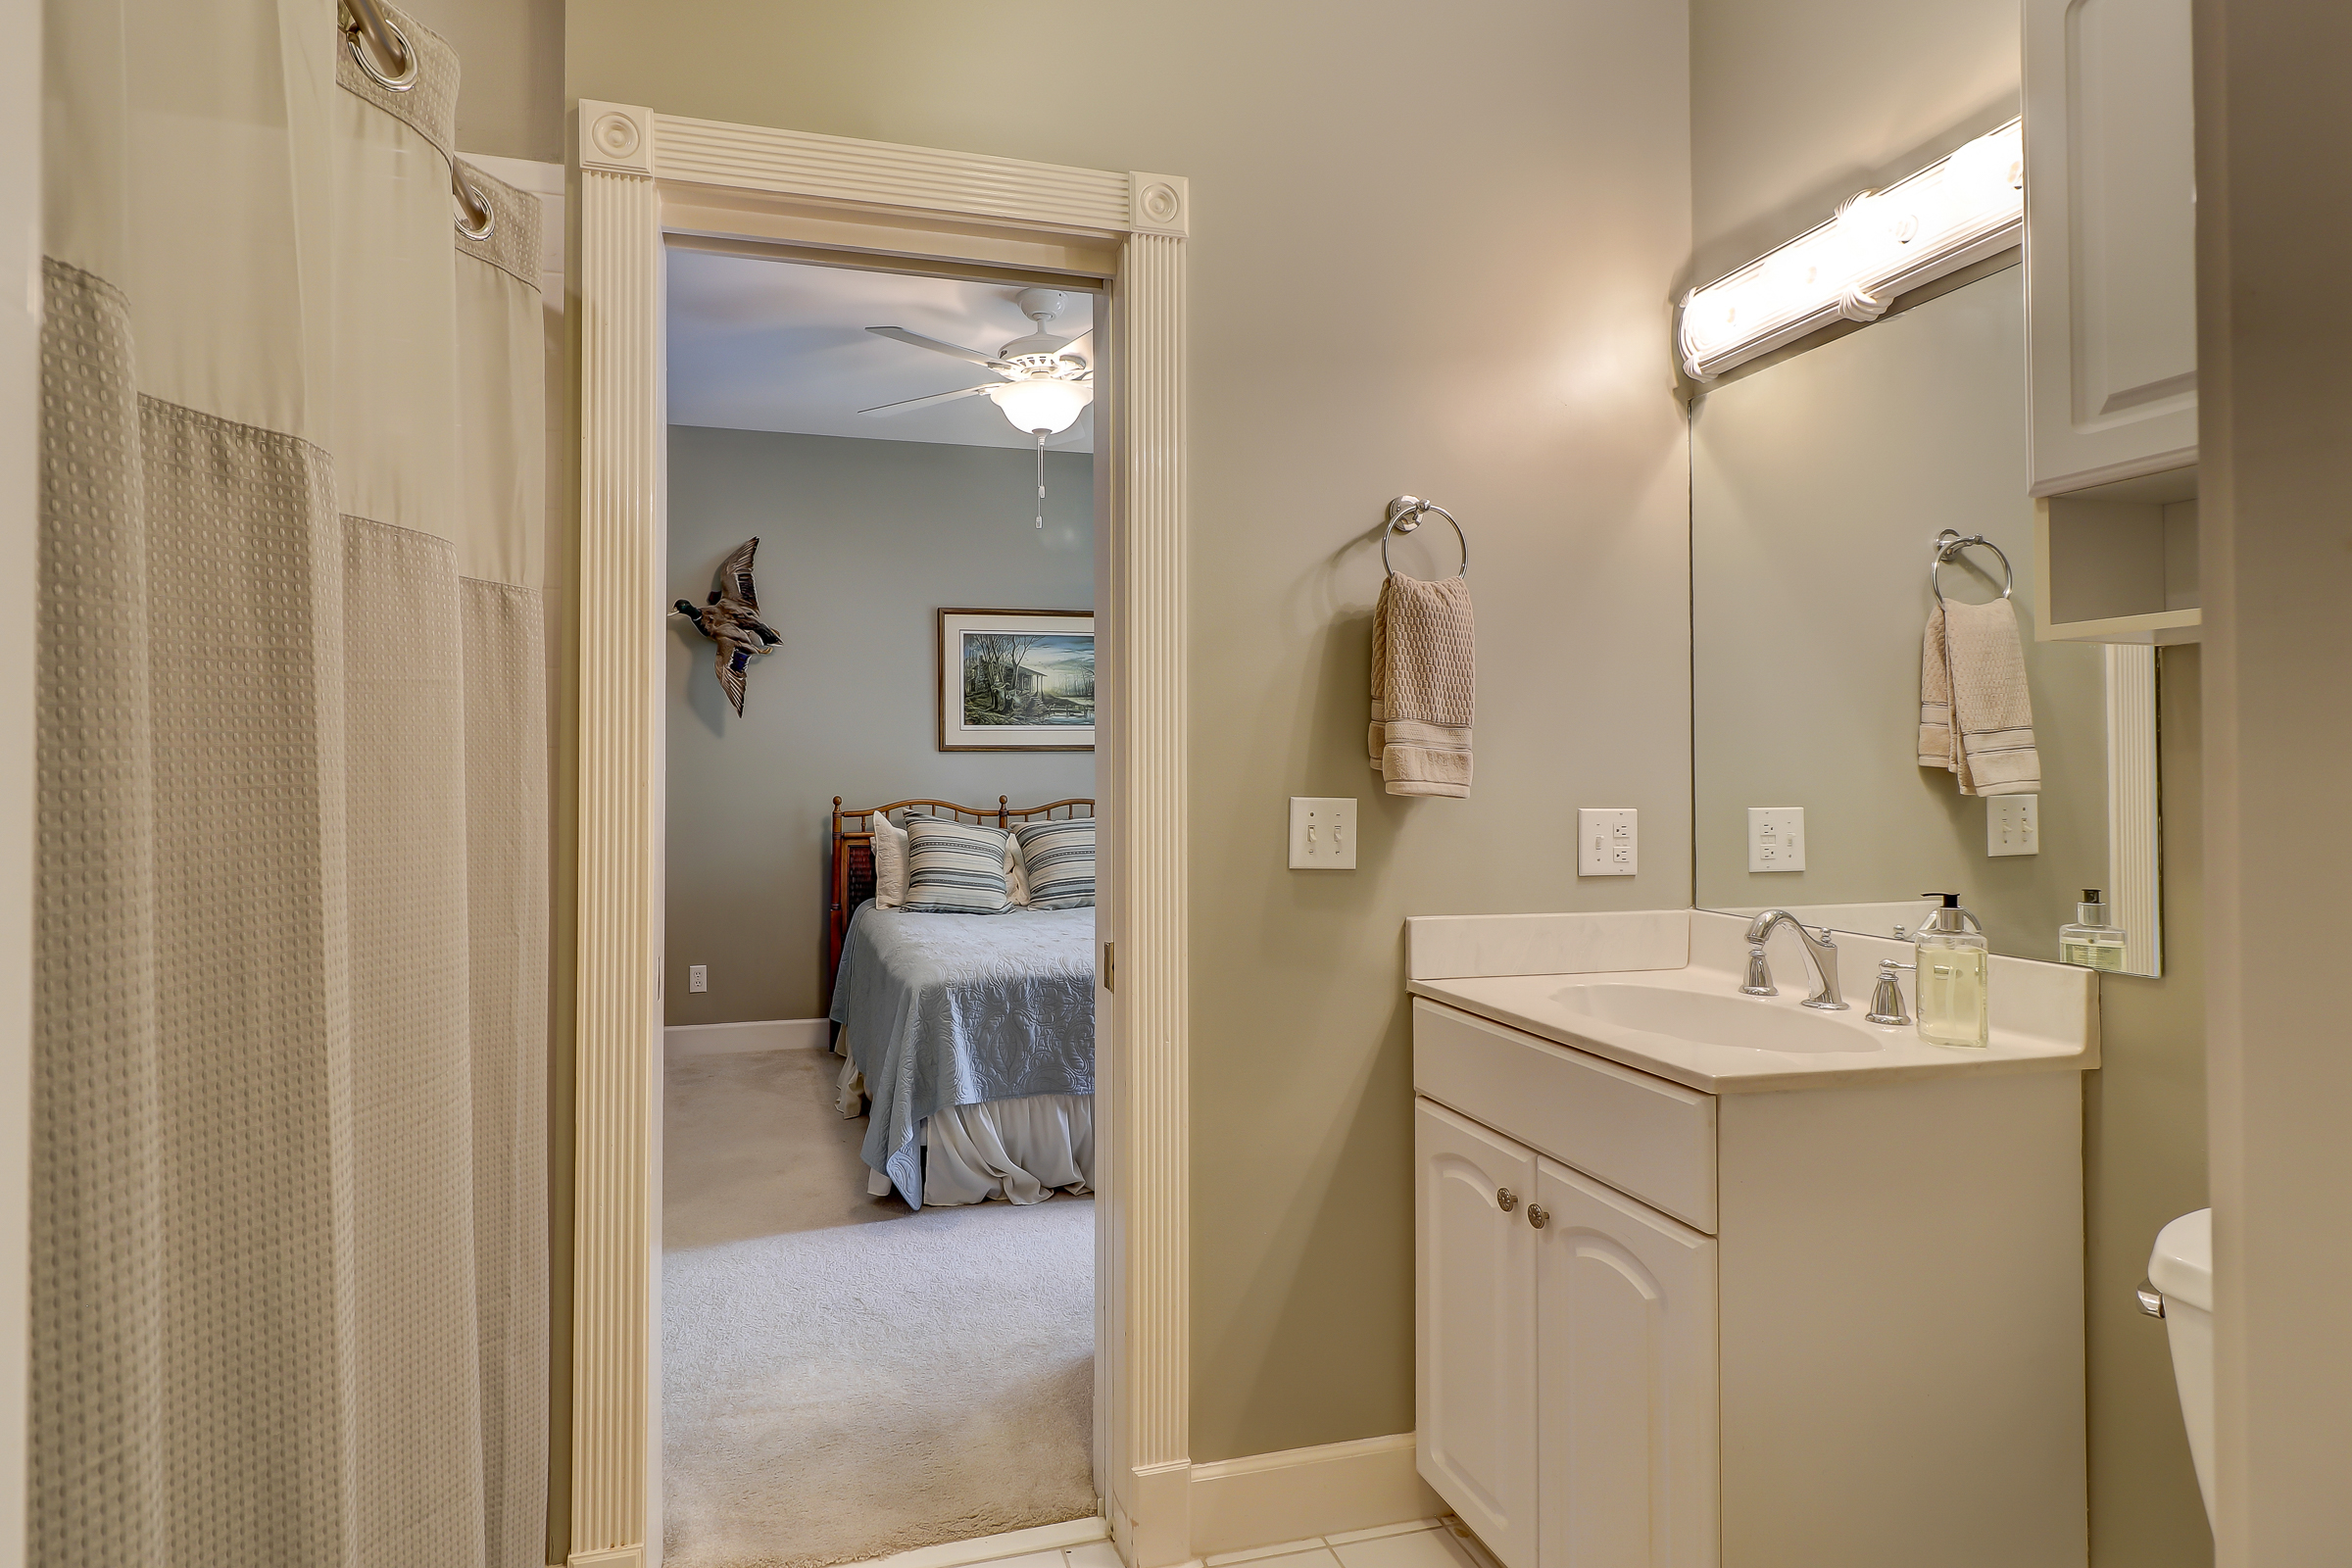 The Jack and Jill bath is shared with the 3rd bedroom on the main level. You have everything you need for single story living. You could choose to utilize both bedrooms as his and her offices or whatever works for your life style. 314 Fort Howell Dr - Palmetto Hall -  Hilton Head